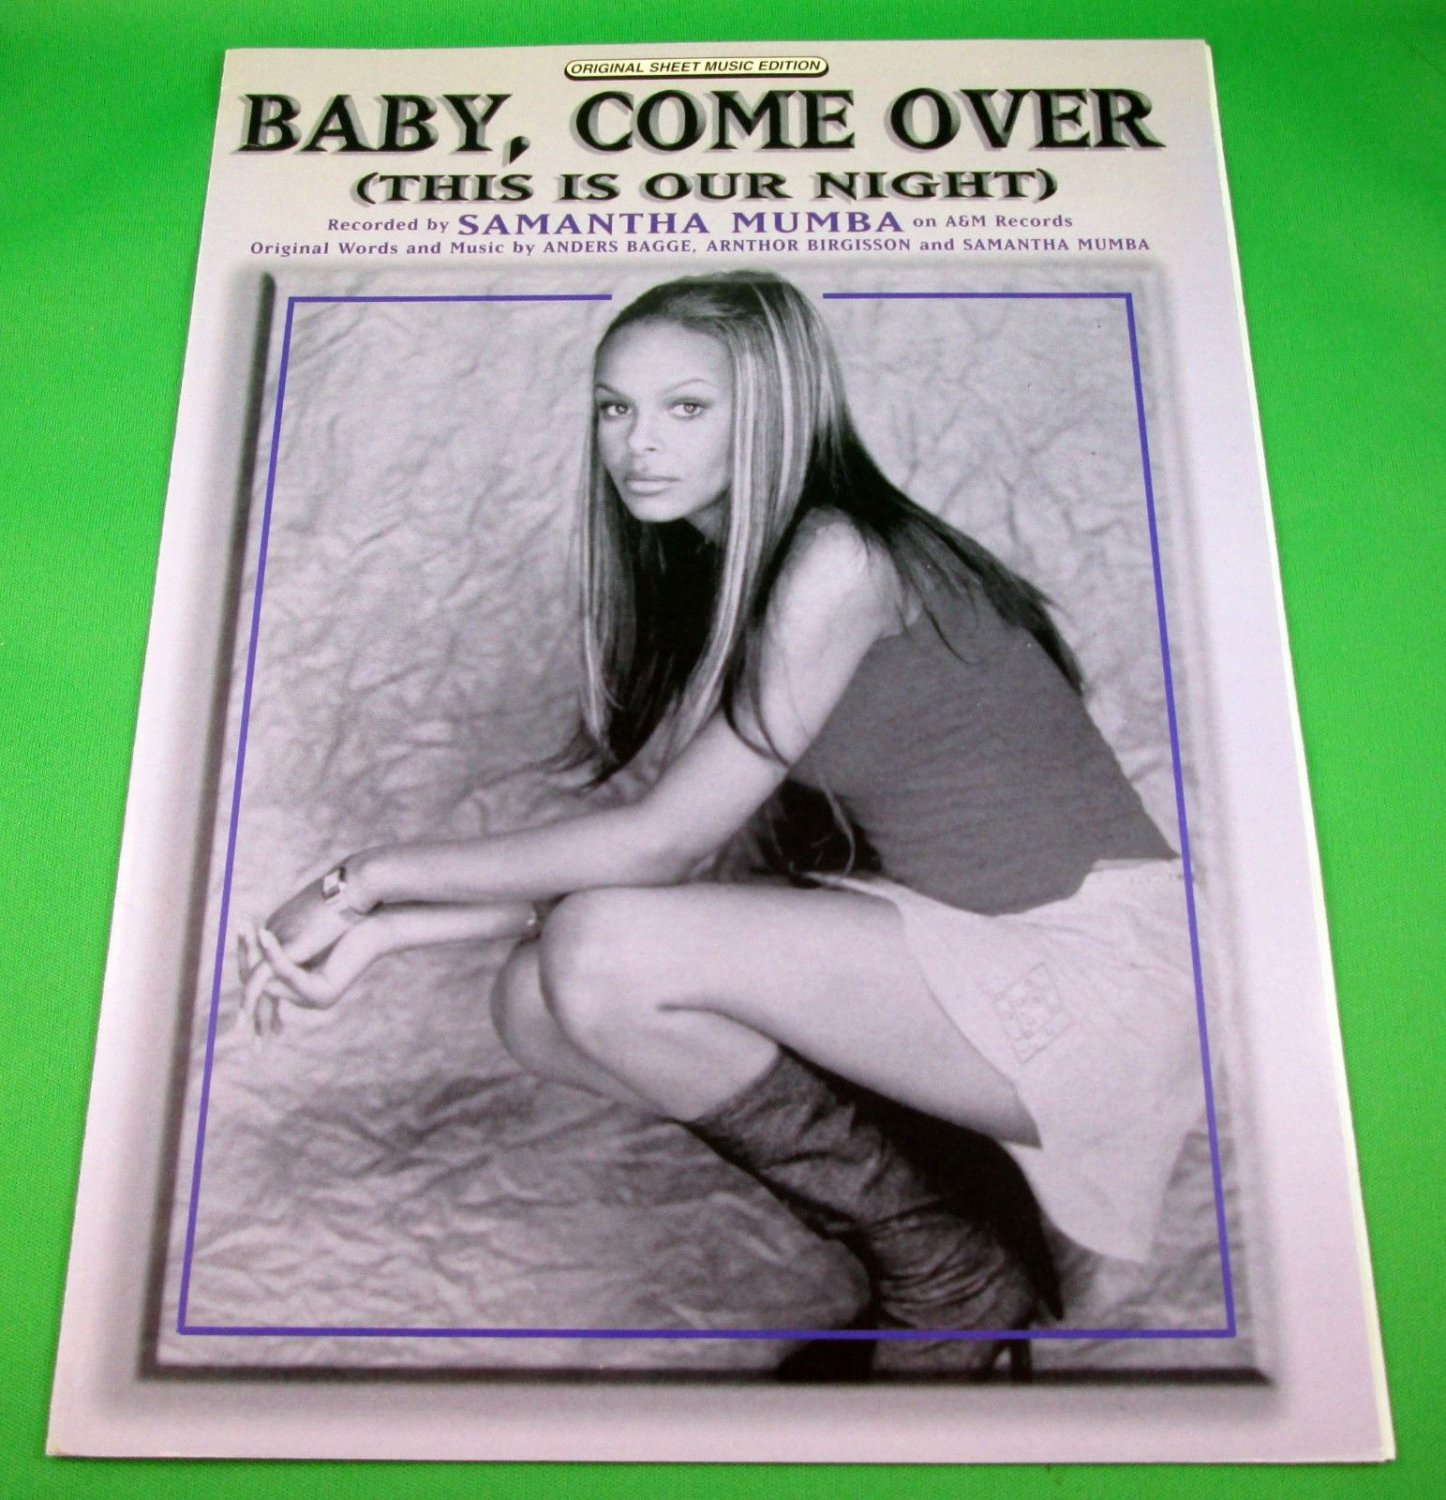 BABY, COME OVER (THIS IS OUR NIGHT) Original Sheet Music Edition SAMANTHA MUMBA